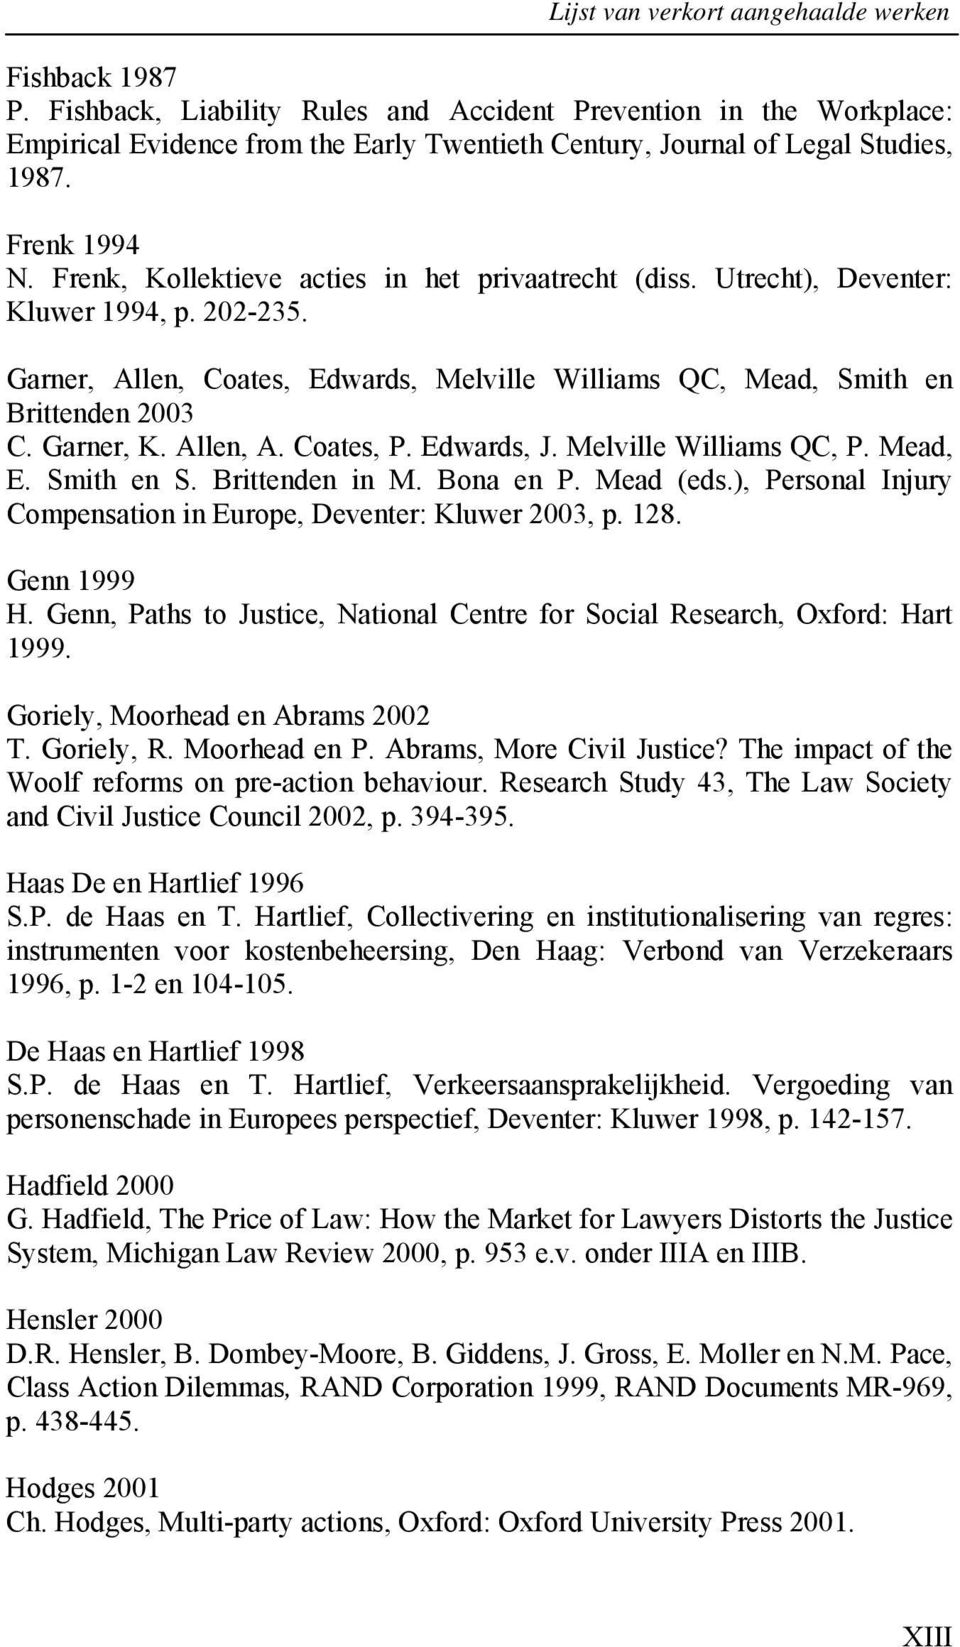 Frenk, Kollektieve acties in het privaatrecht (diss. Utrecht), Deventer: Kluwer 1994, p. 202-235. Garner, Allen, Coates, Edwards, Melville Williams QC, Mead, Smith en Brittenden 2003 C. Garner, K.